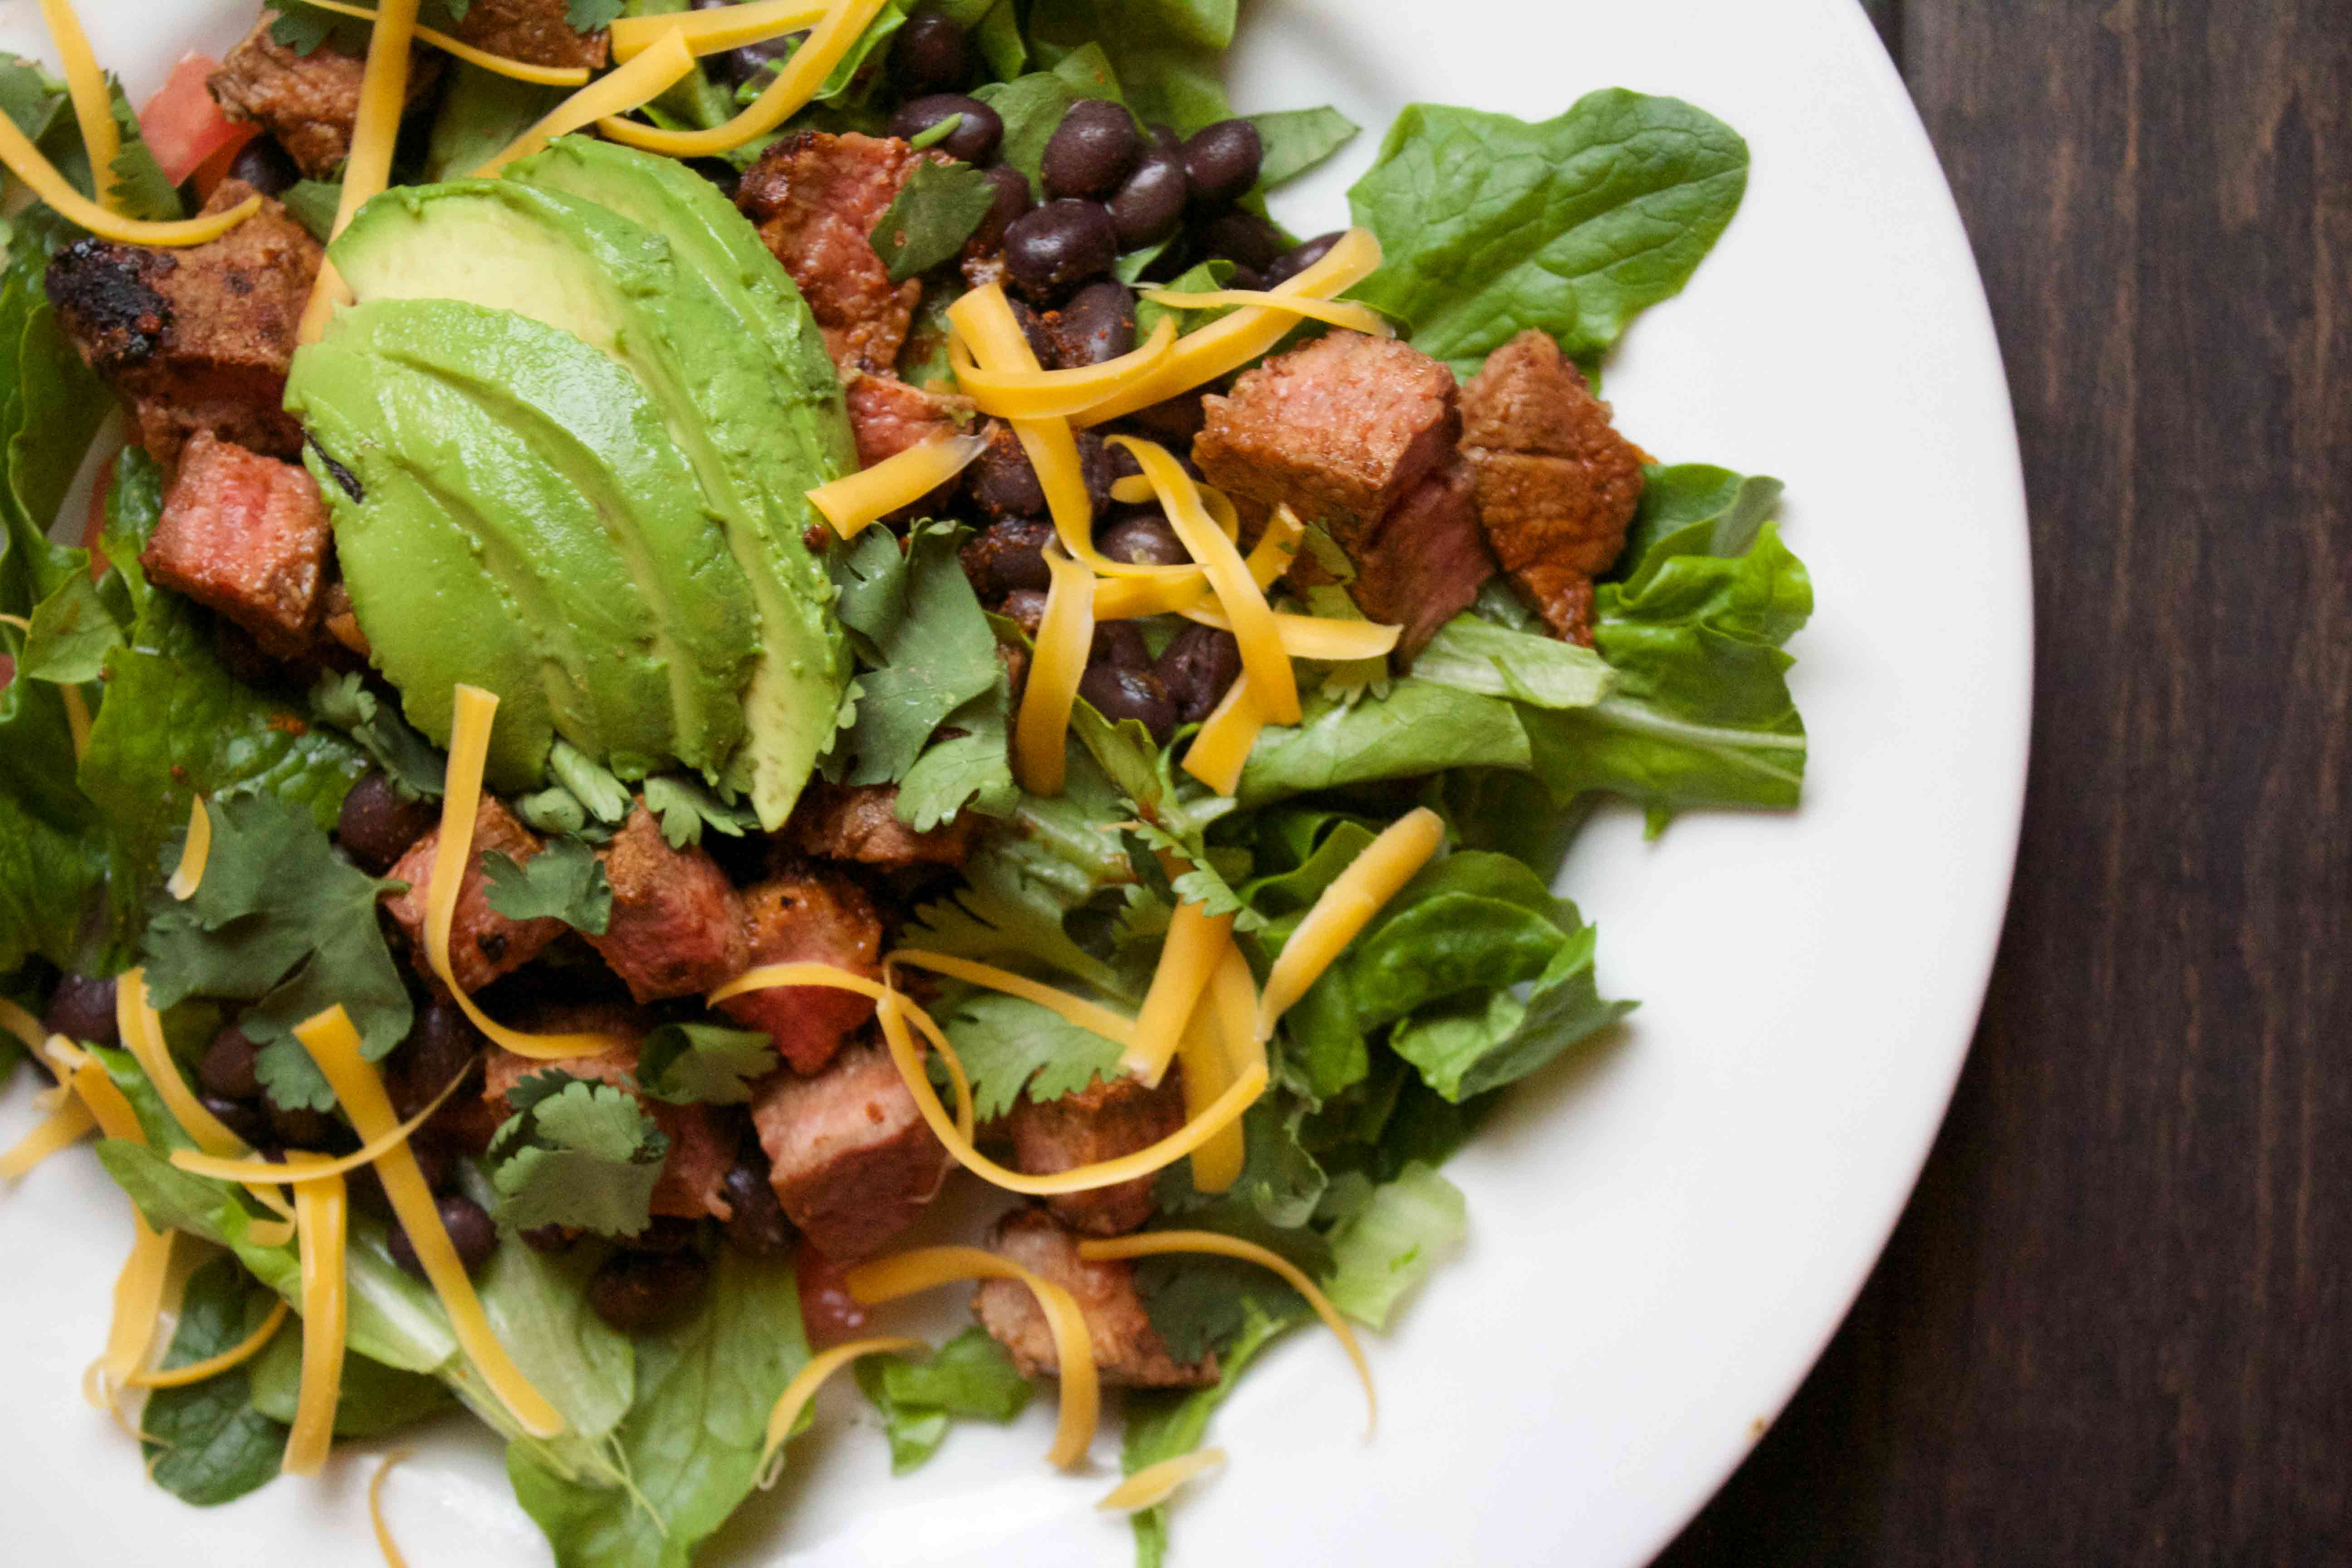 Chipotle Steak Salad. Very filling and full of flavor! Low carb recipes at www.foodcoach.me